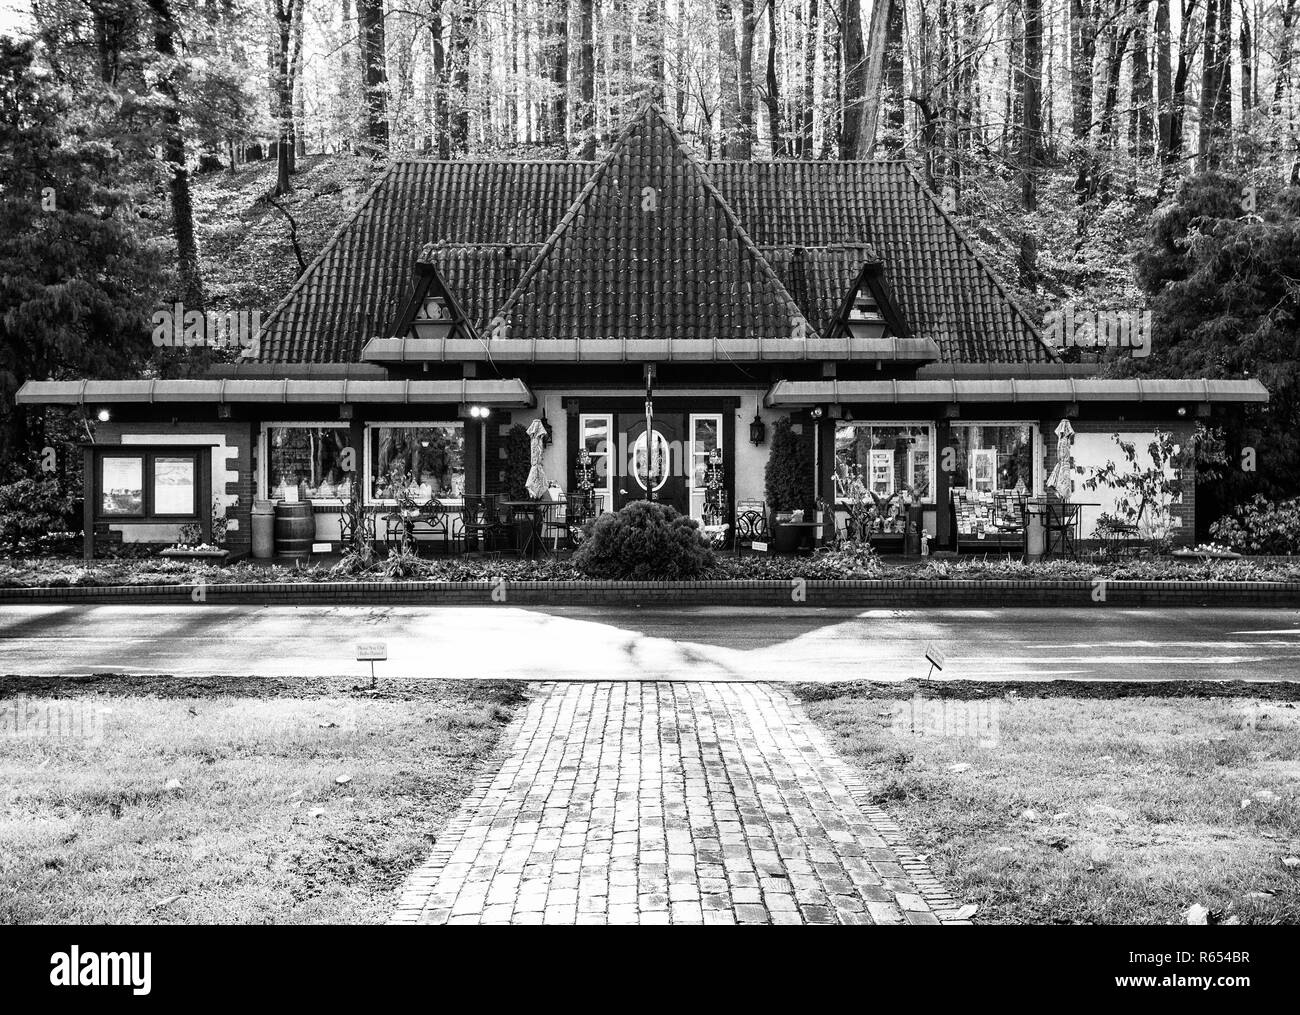 The Gate House Gift Shop is backlit in early morning against a backdrop of trees, at the Biltmore Estate in Asheville, NC, USA - Stock Image